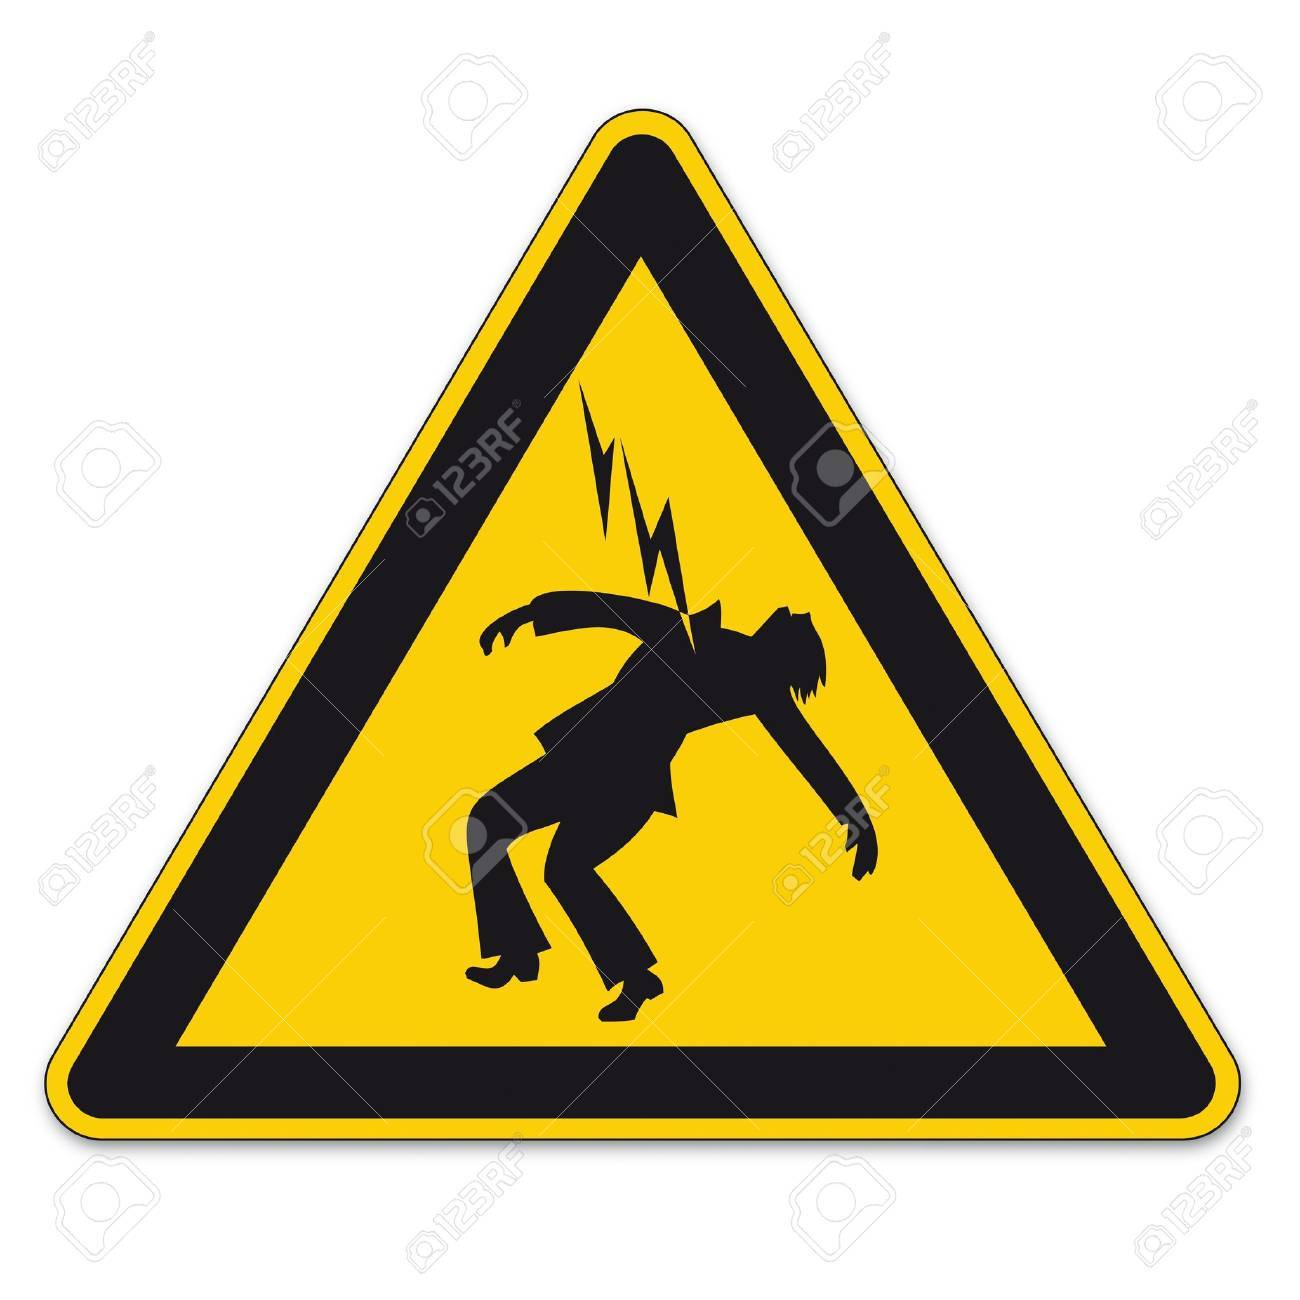 Safety signs warning triangle sign vector pictogram icon Danger high voltage lightning Stock Vector - 15313213